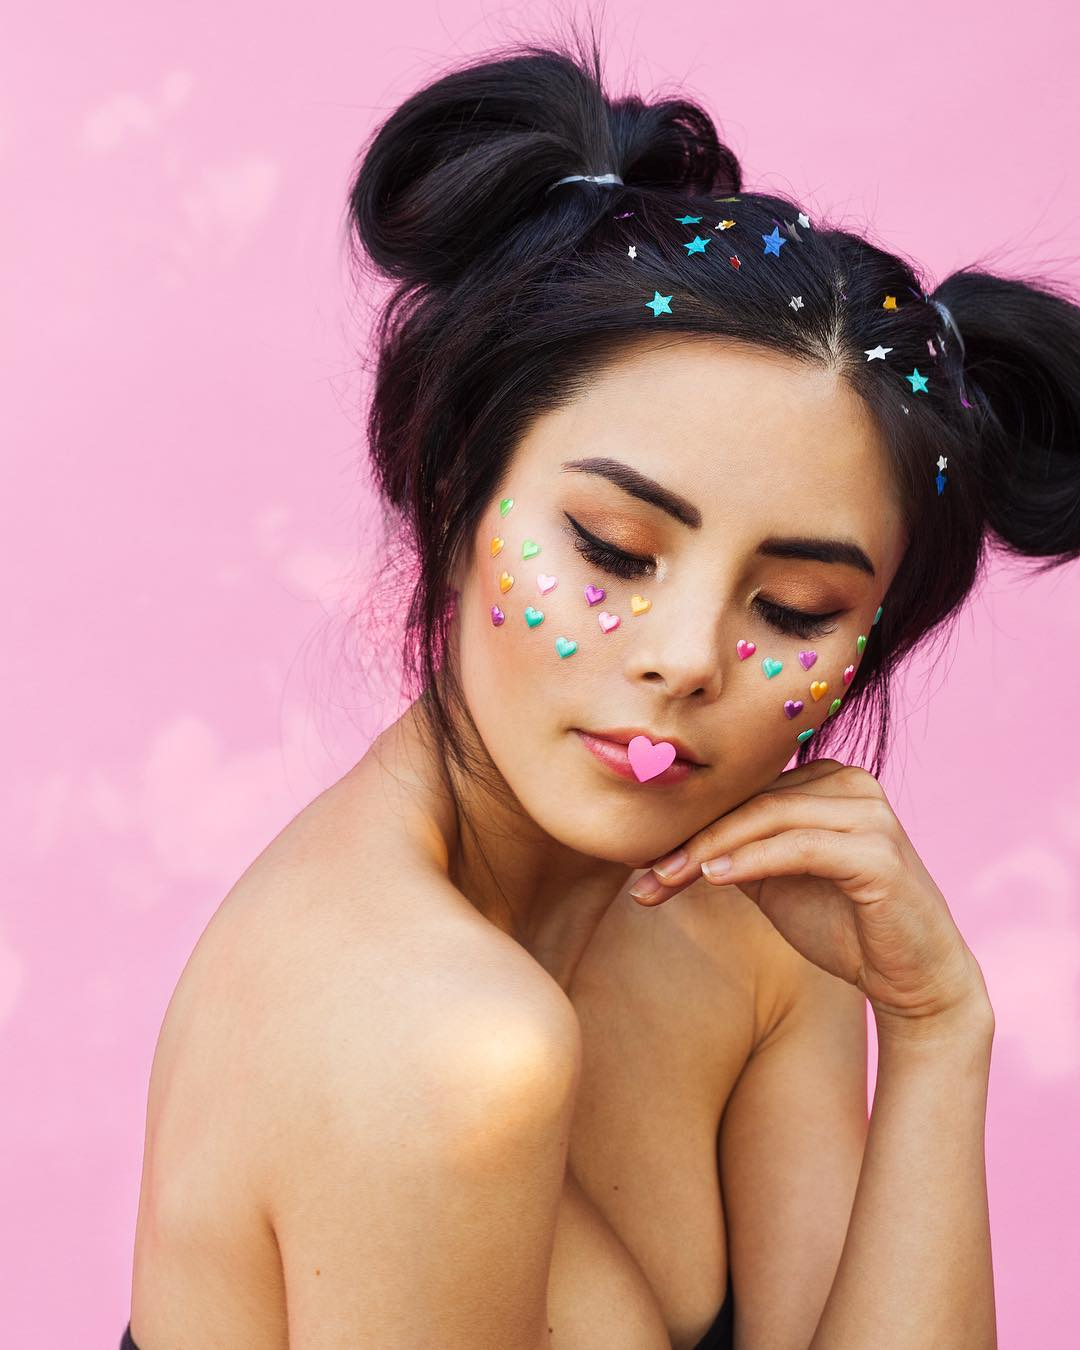 Anna Akana With Two Side Buns And Star Heart Embroidery 2019